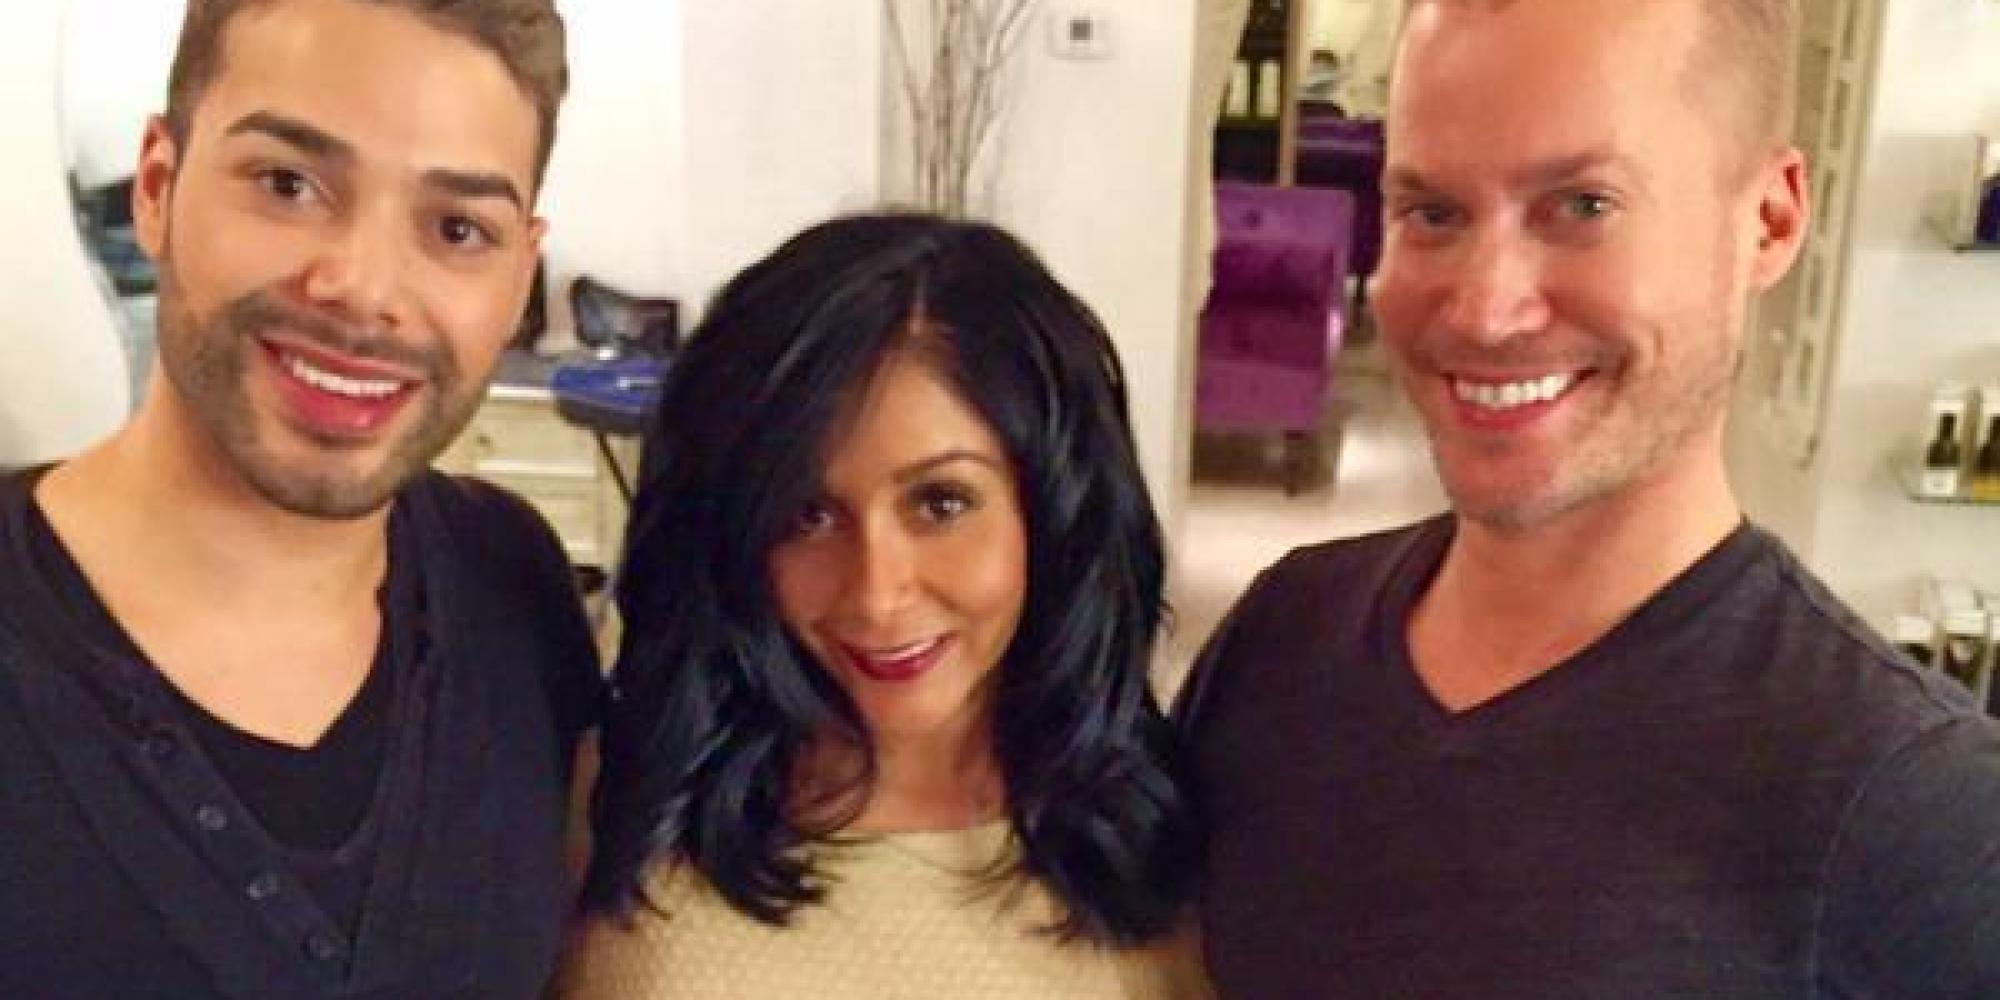 Snooki Of Jersey Shore Will Officiate A Gay Wedding